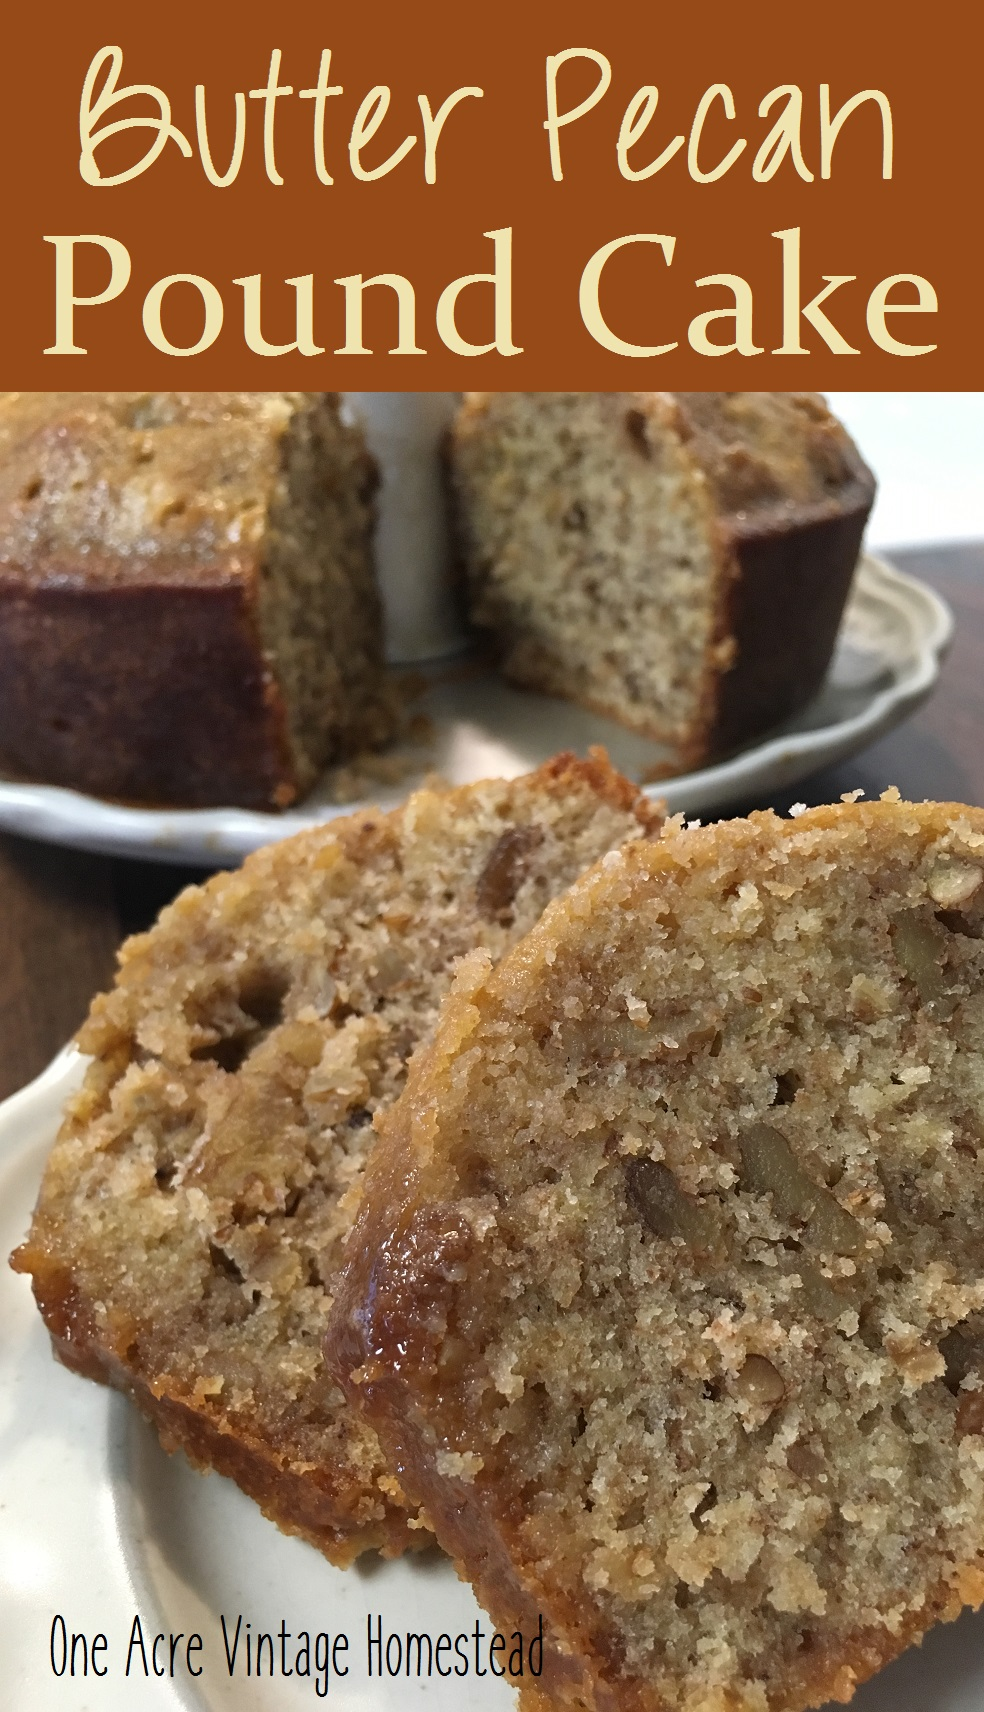 Best Pound Cake Recipe In The World